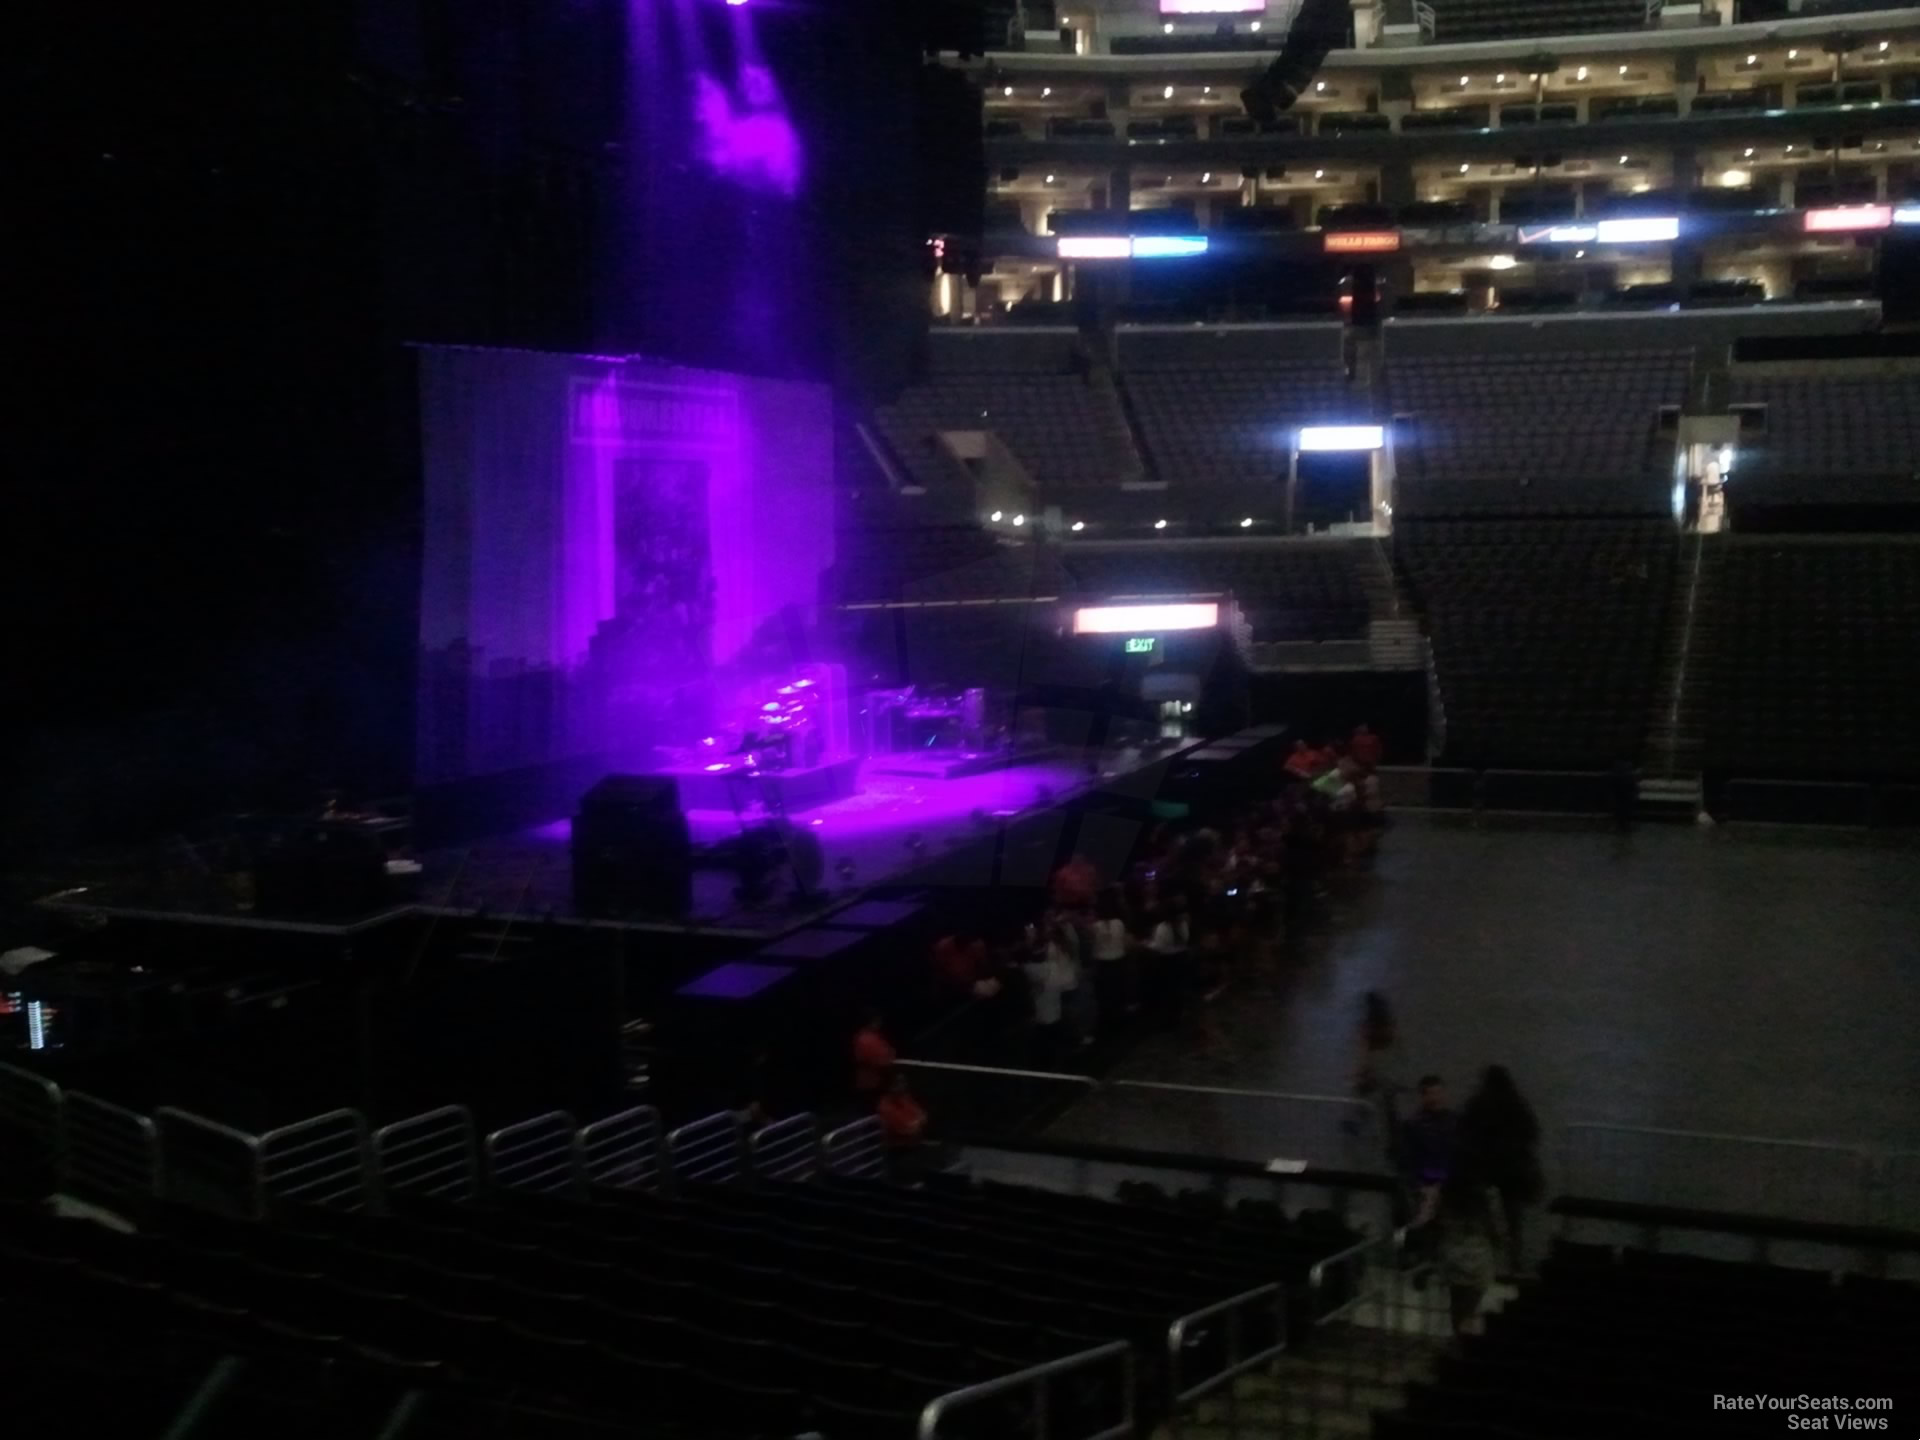 Staples Center Section 113 Concert Seating - RateYourSeats.com